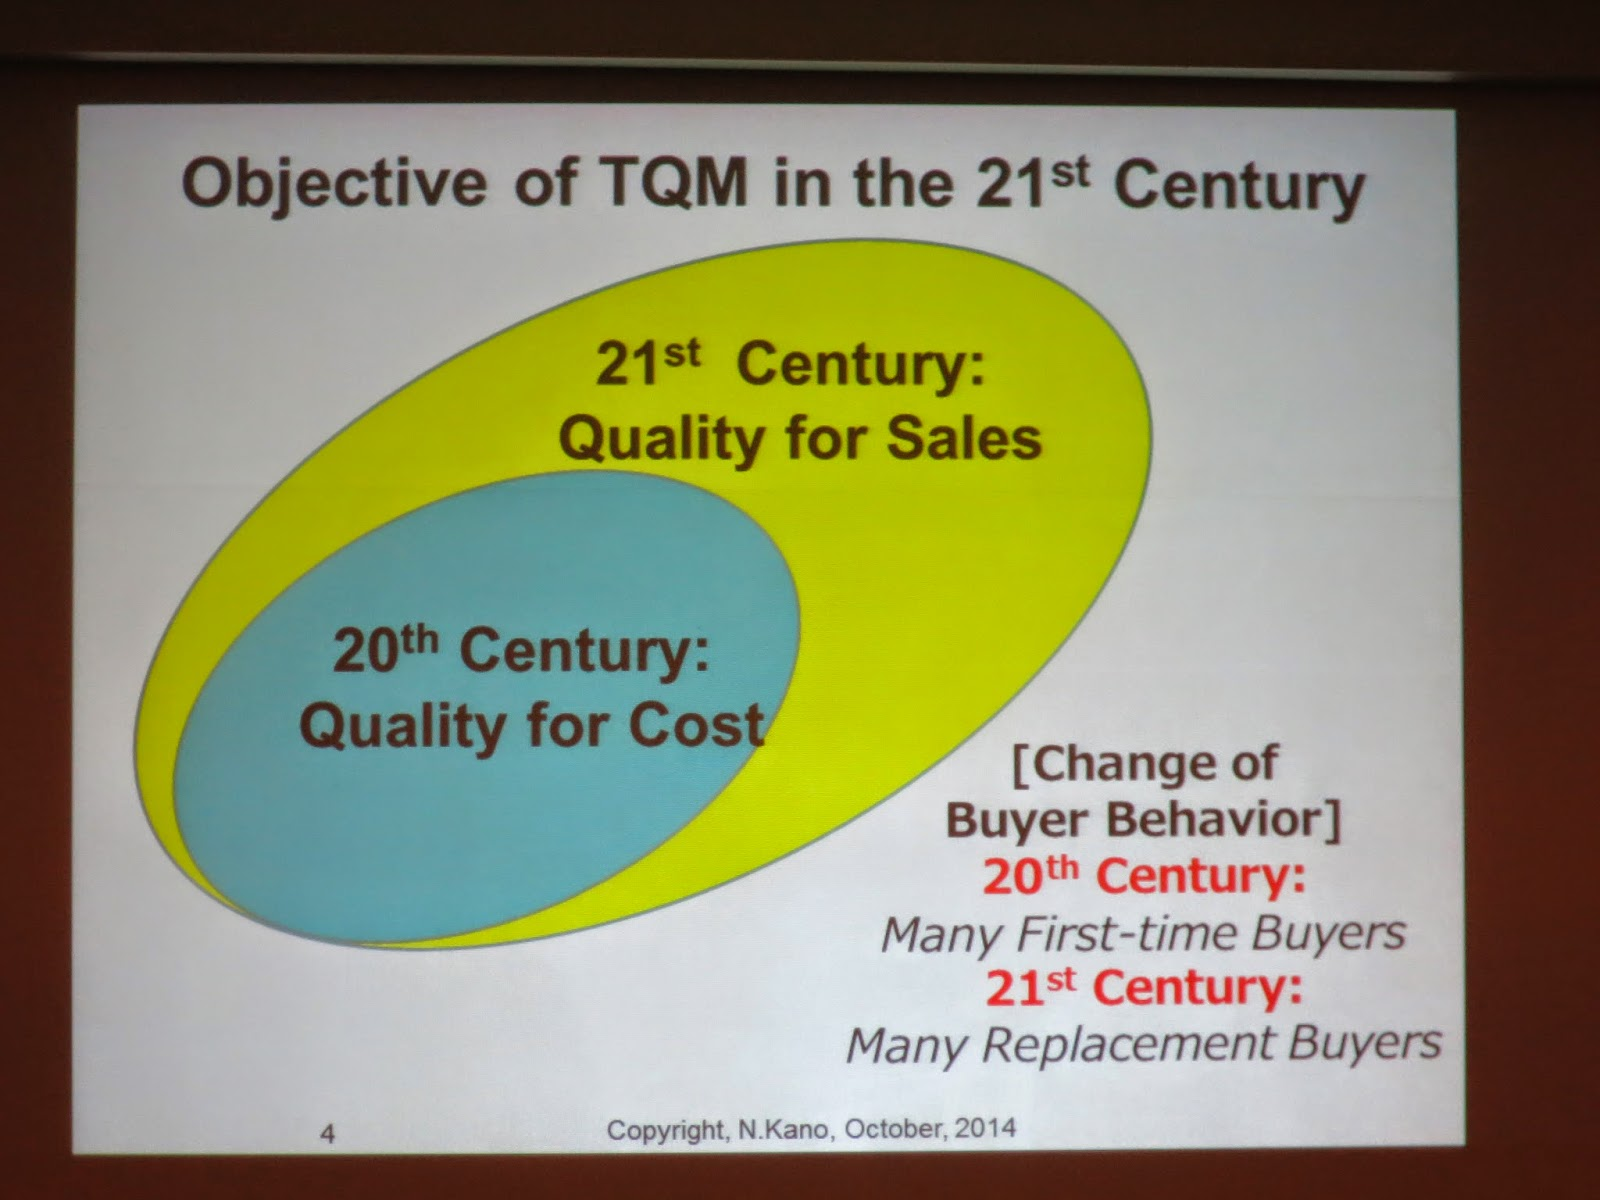 quality alchemist icq tokyo day  kano showed us the objective of tqm in the 21st century he said quality for cost was in the 20th century but quality for s would be for the 21st